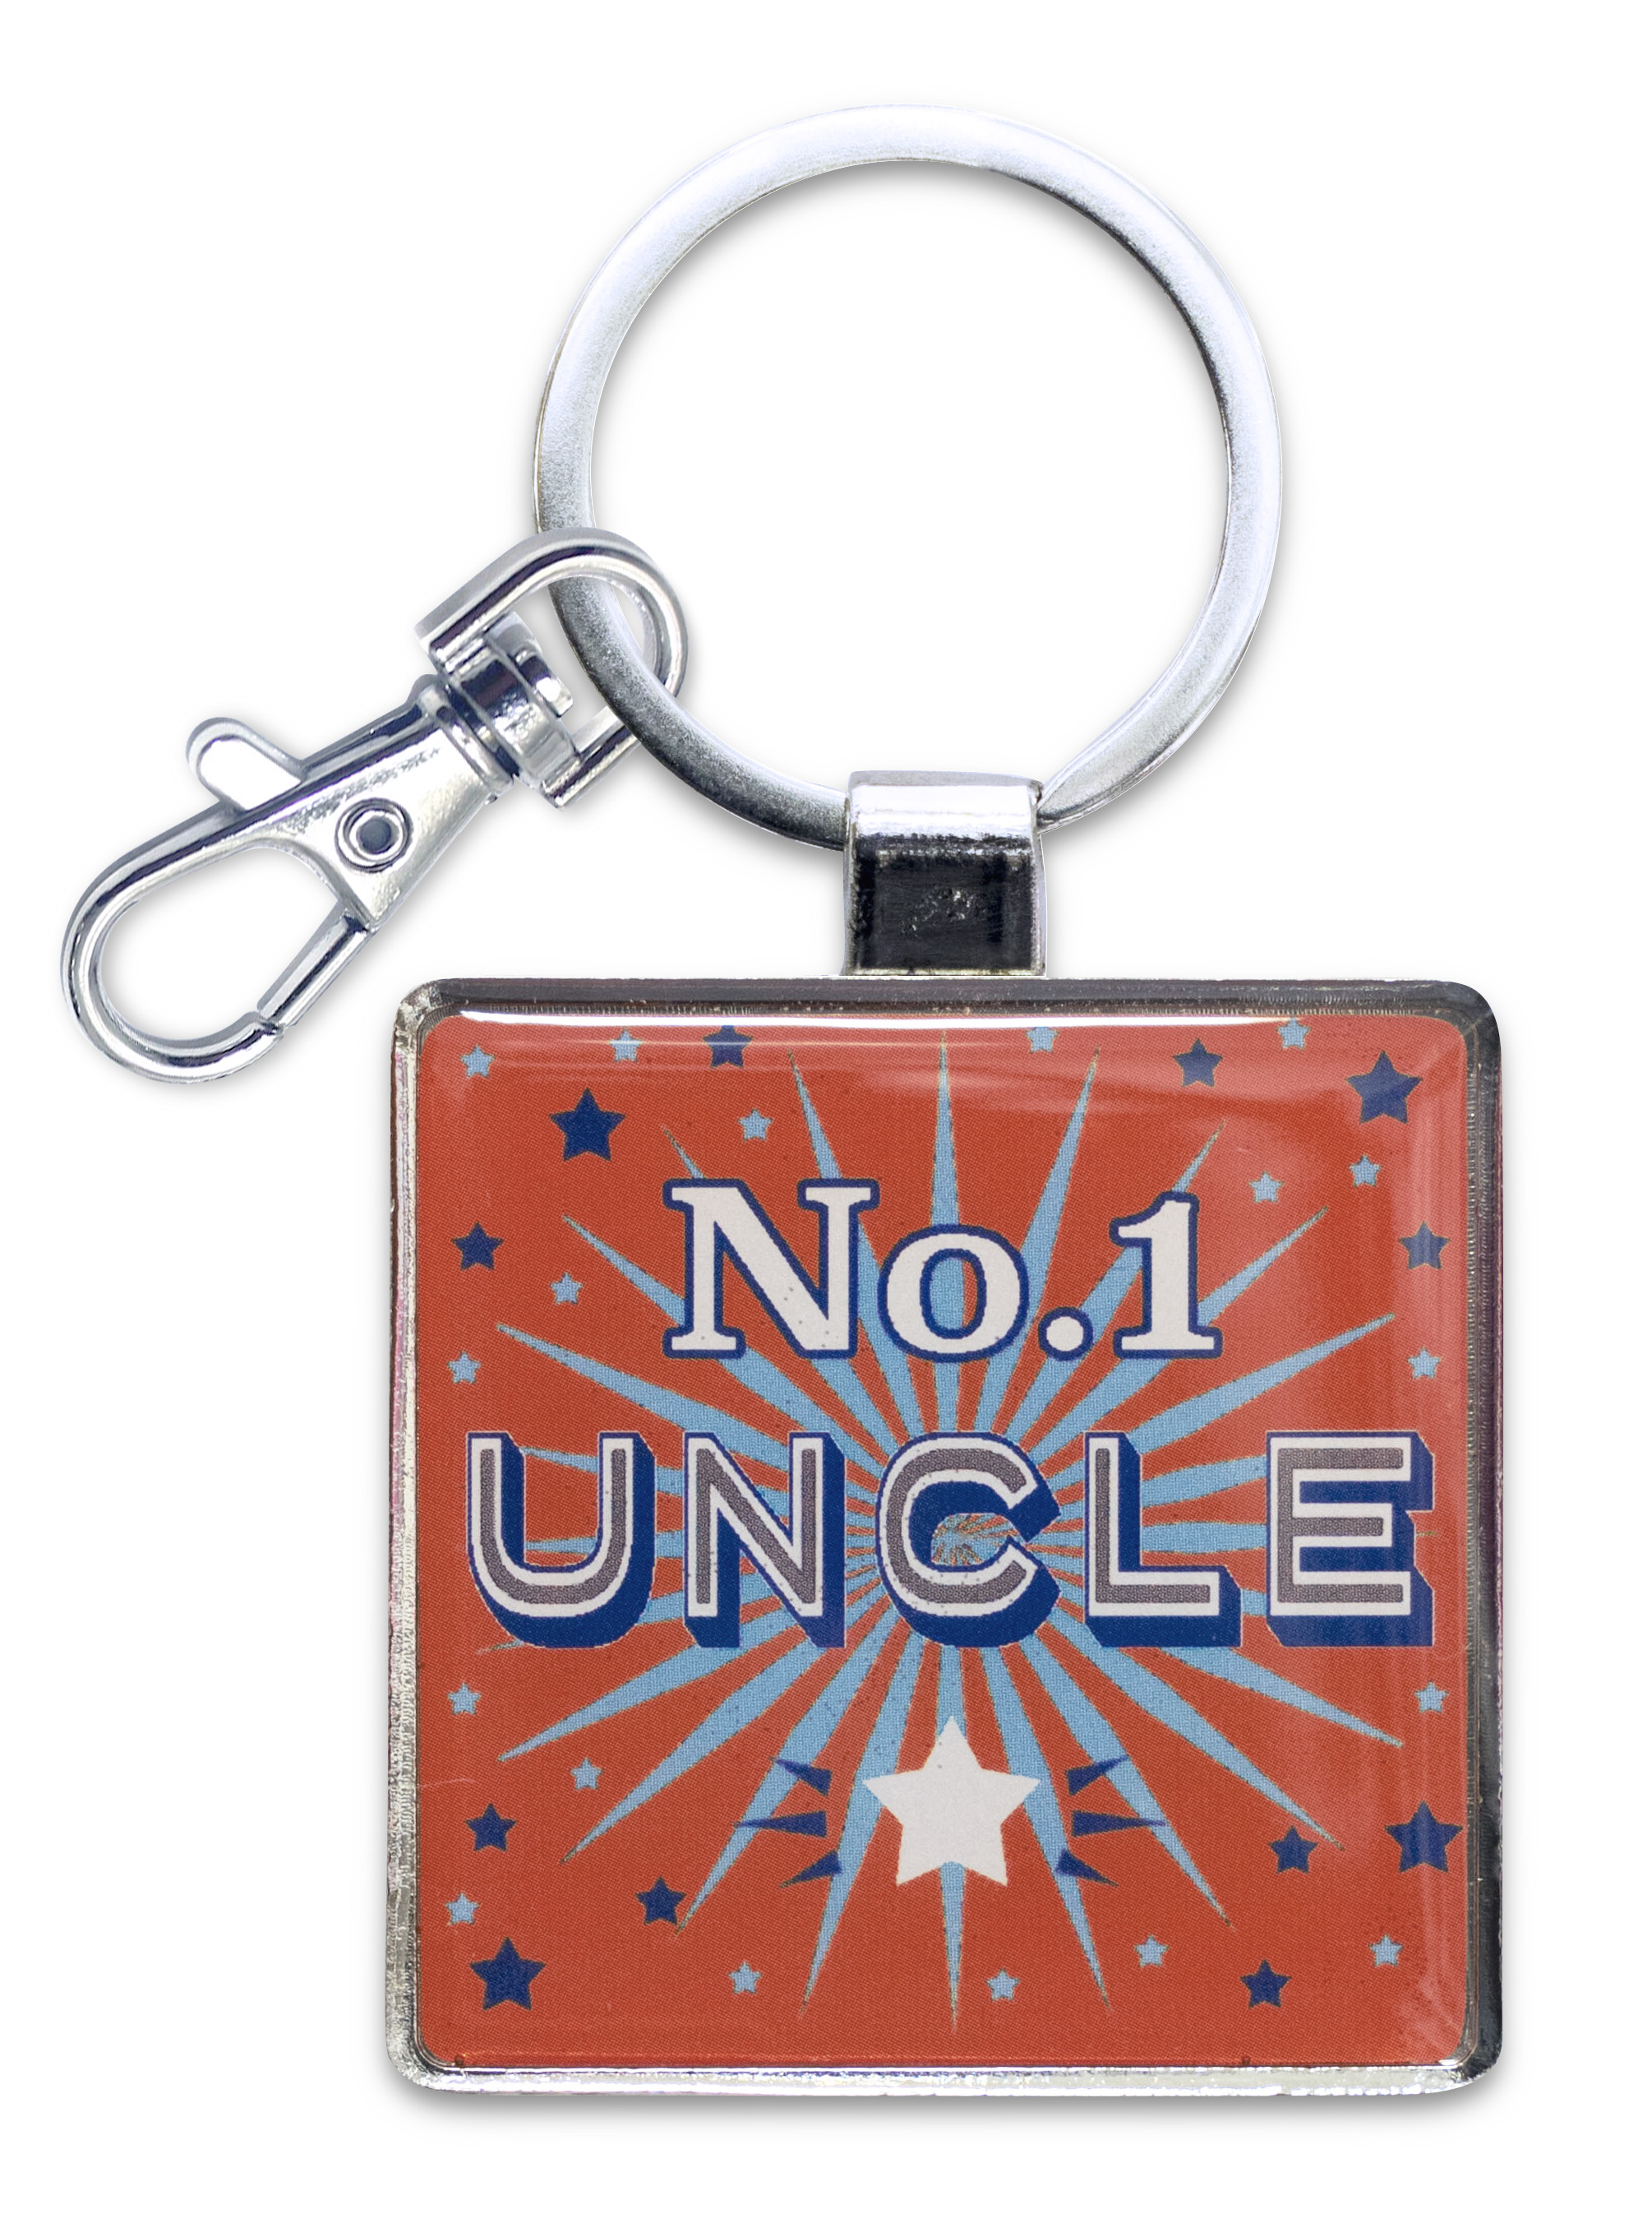 1 Uncle Little Wishes Metallic Keyring Lovely Birthday Christmas Gift Idea